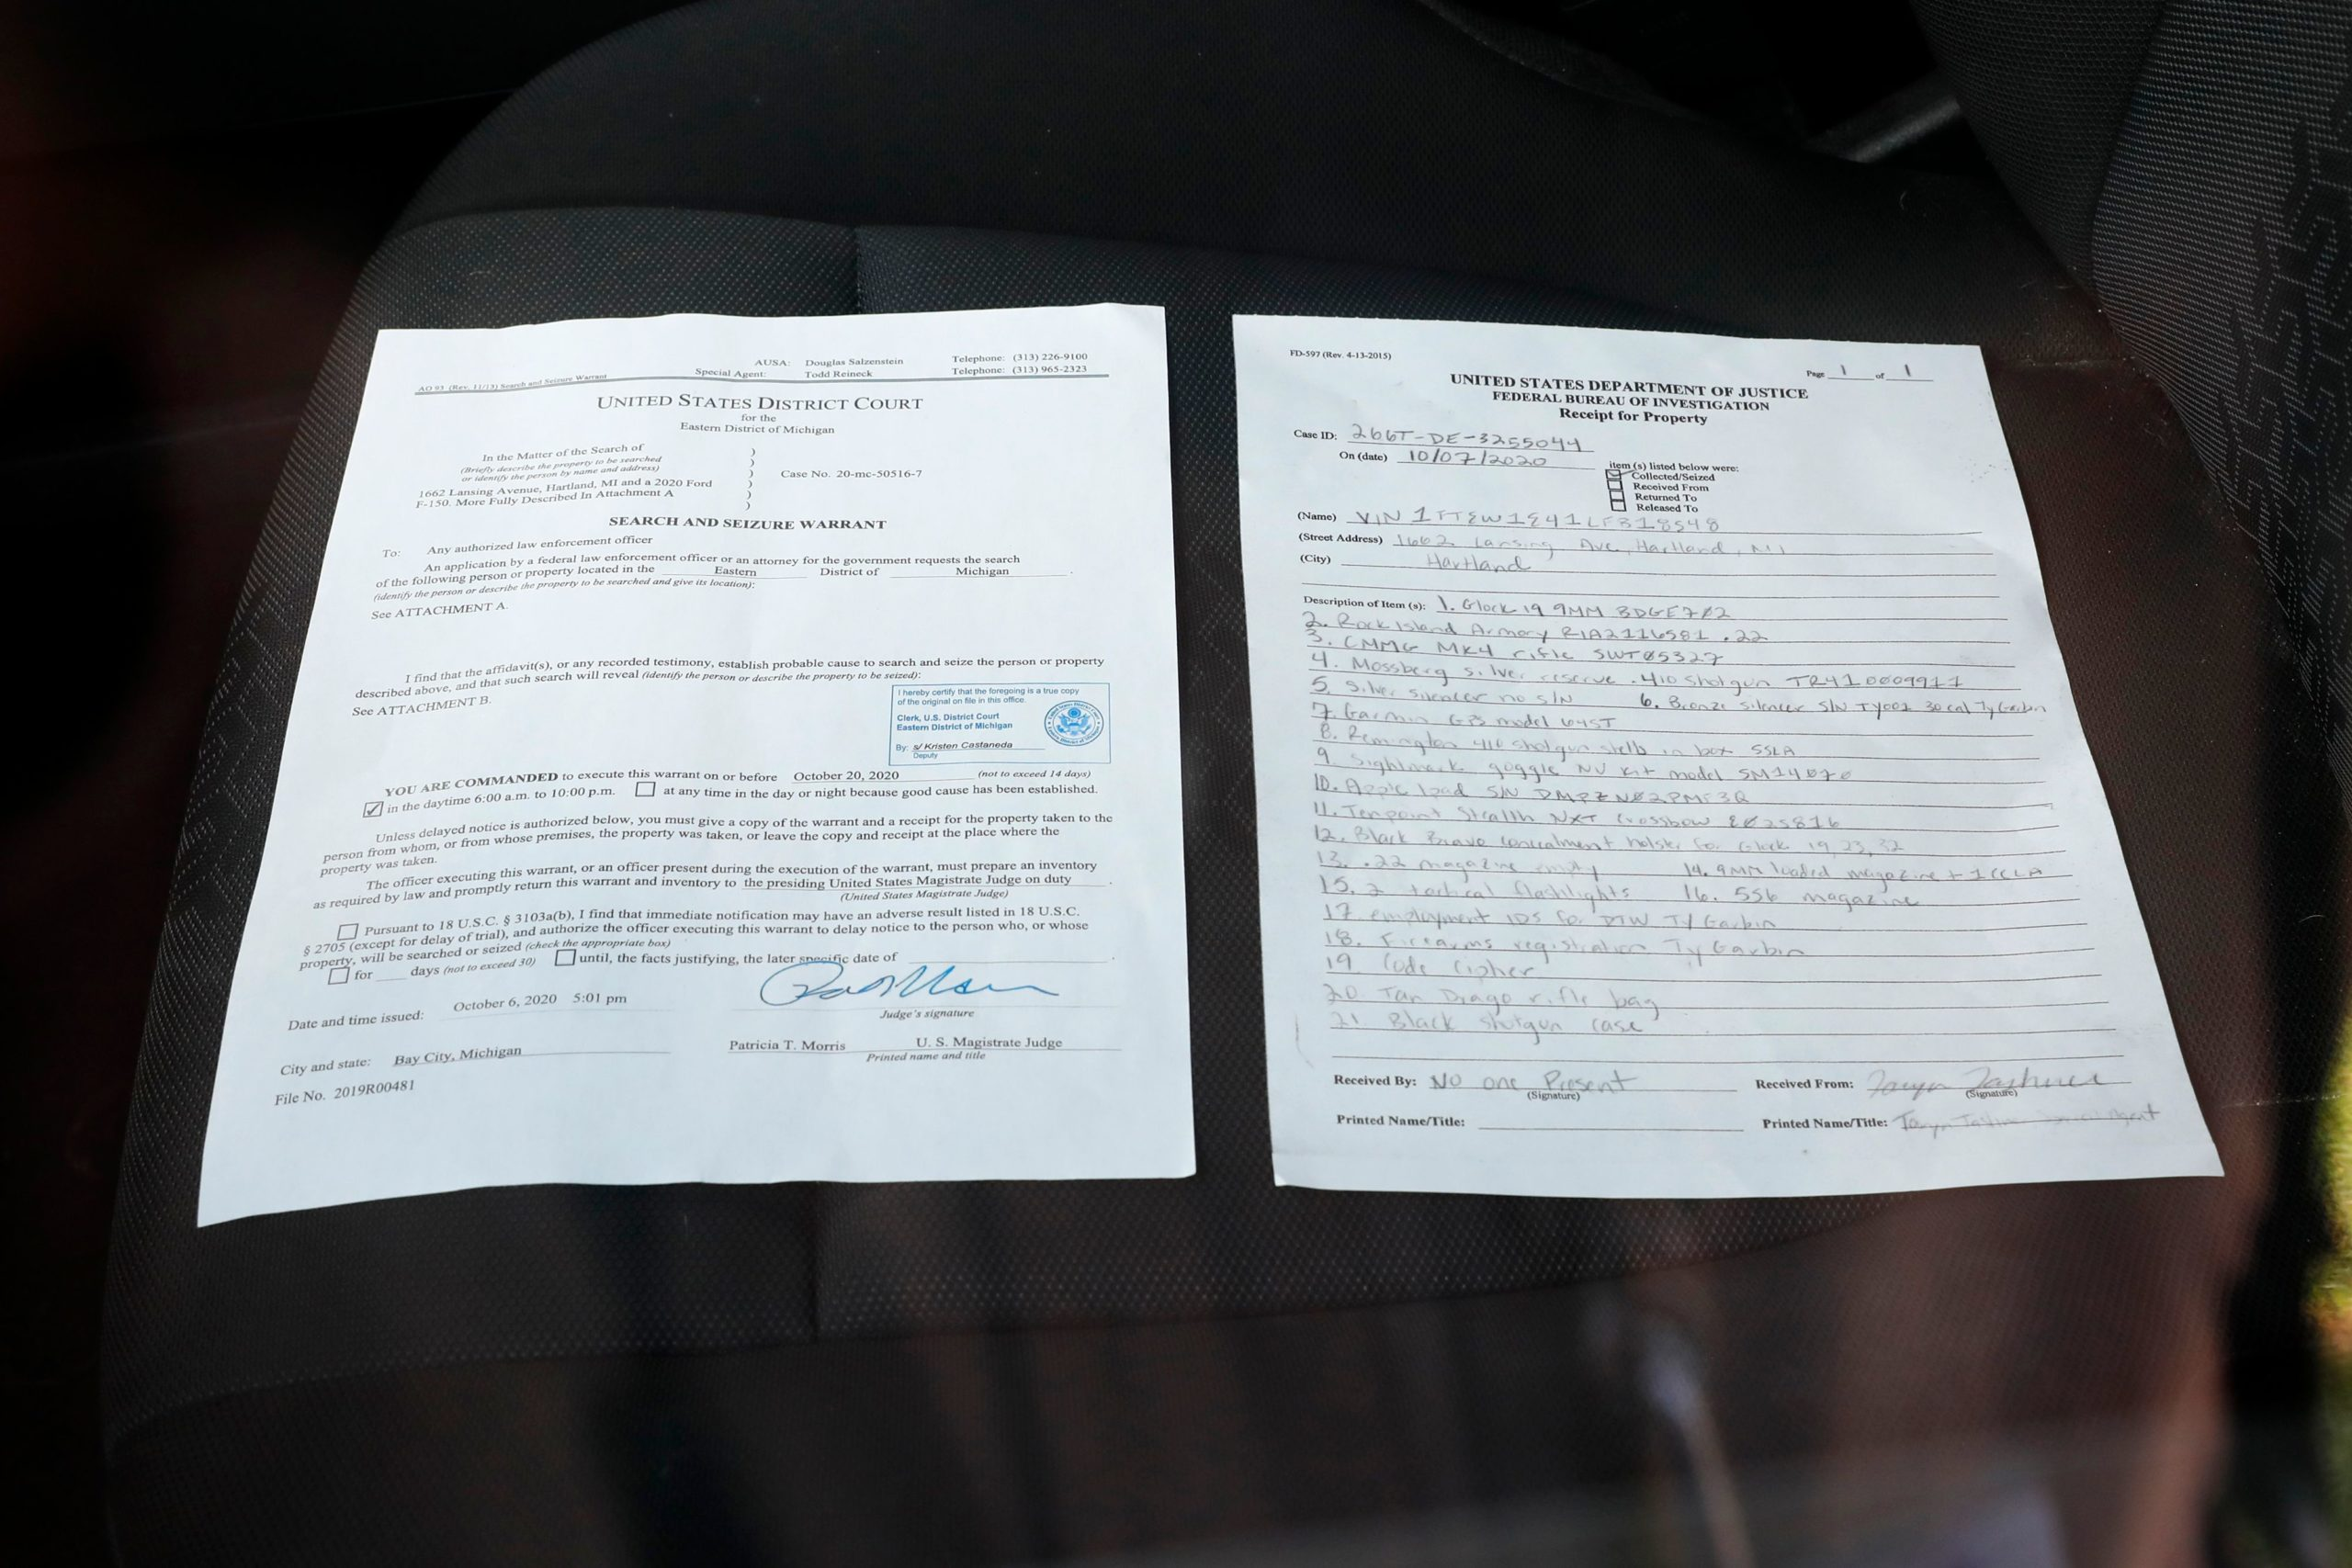 A copy of a search warrant and property list is left on a car seat after FBI searched a home in a Hartland Township mobile home park late Wednesday night and into the morning in connection with a plot to kidnap Michigan Governor Gretchen Whitmer, on October 8, 2020 in Heartland, Michigan. - Six men have been charged as part of a militia plot to kidnap Michigan Governor Gretchen Whitmer, who was repeatedly attacked by President Donald Trump this year for her tough coronavirus lockdown, according to court records released. (JEFF KOWALSKY/AFP via Getty Images)